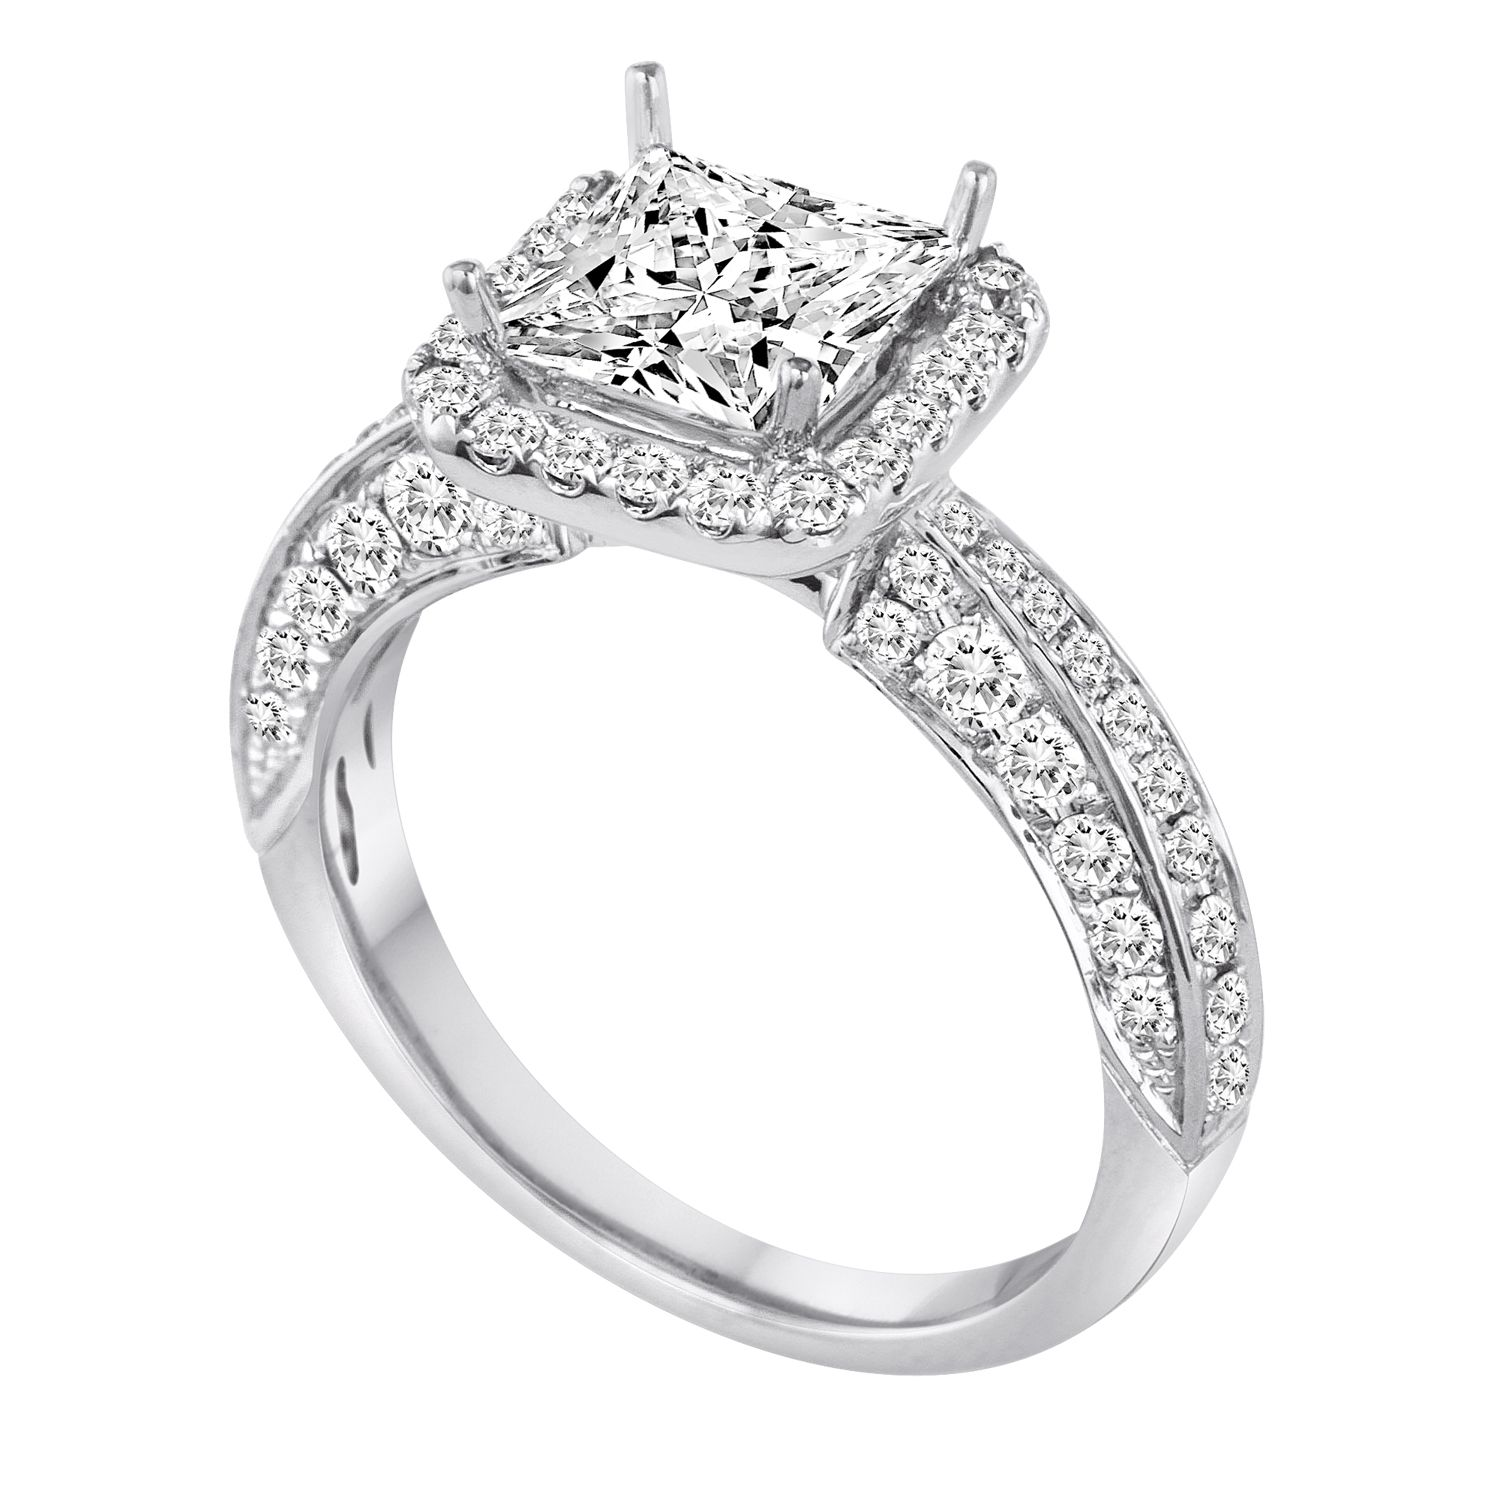 18K White Gold Pave Square Halo Engagement Ring with